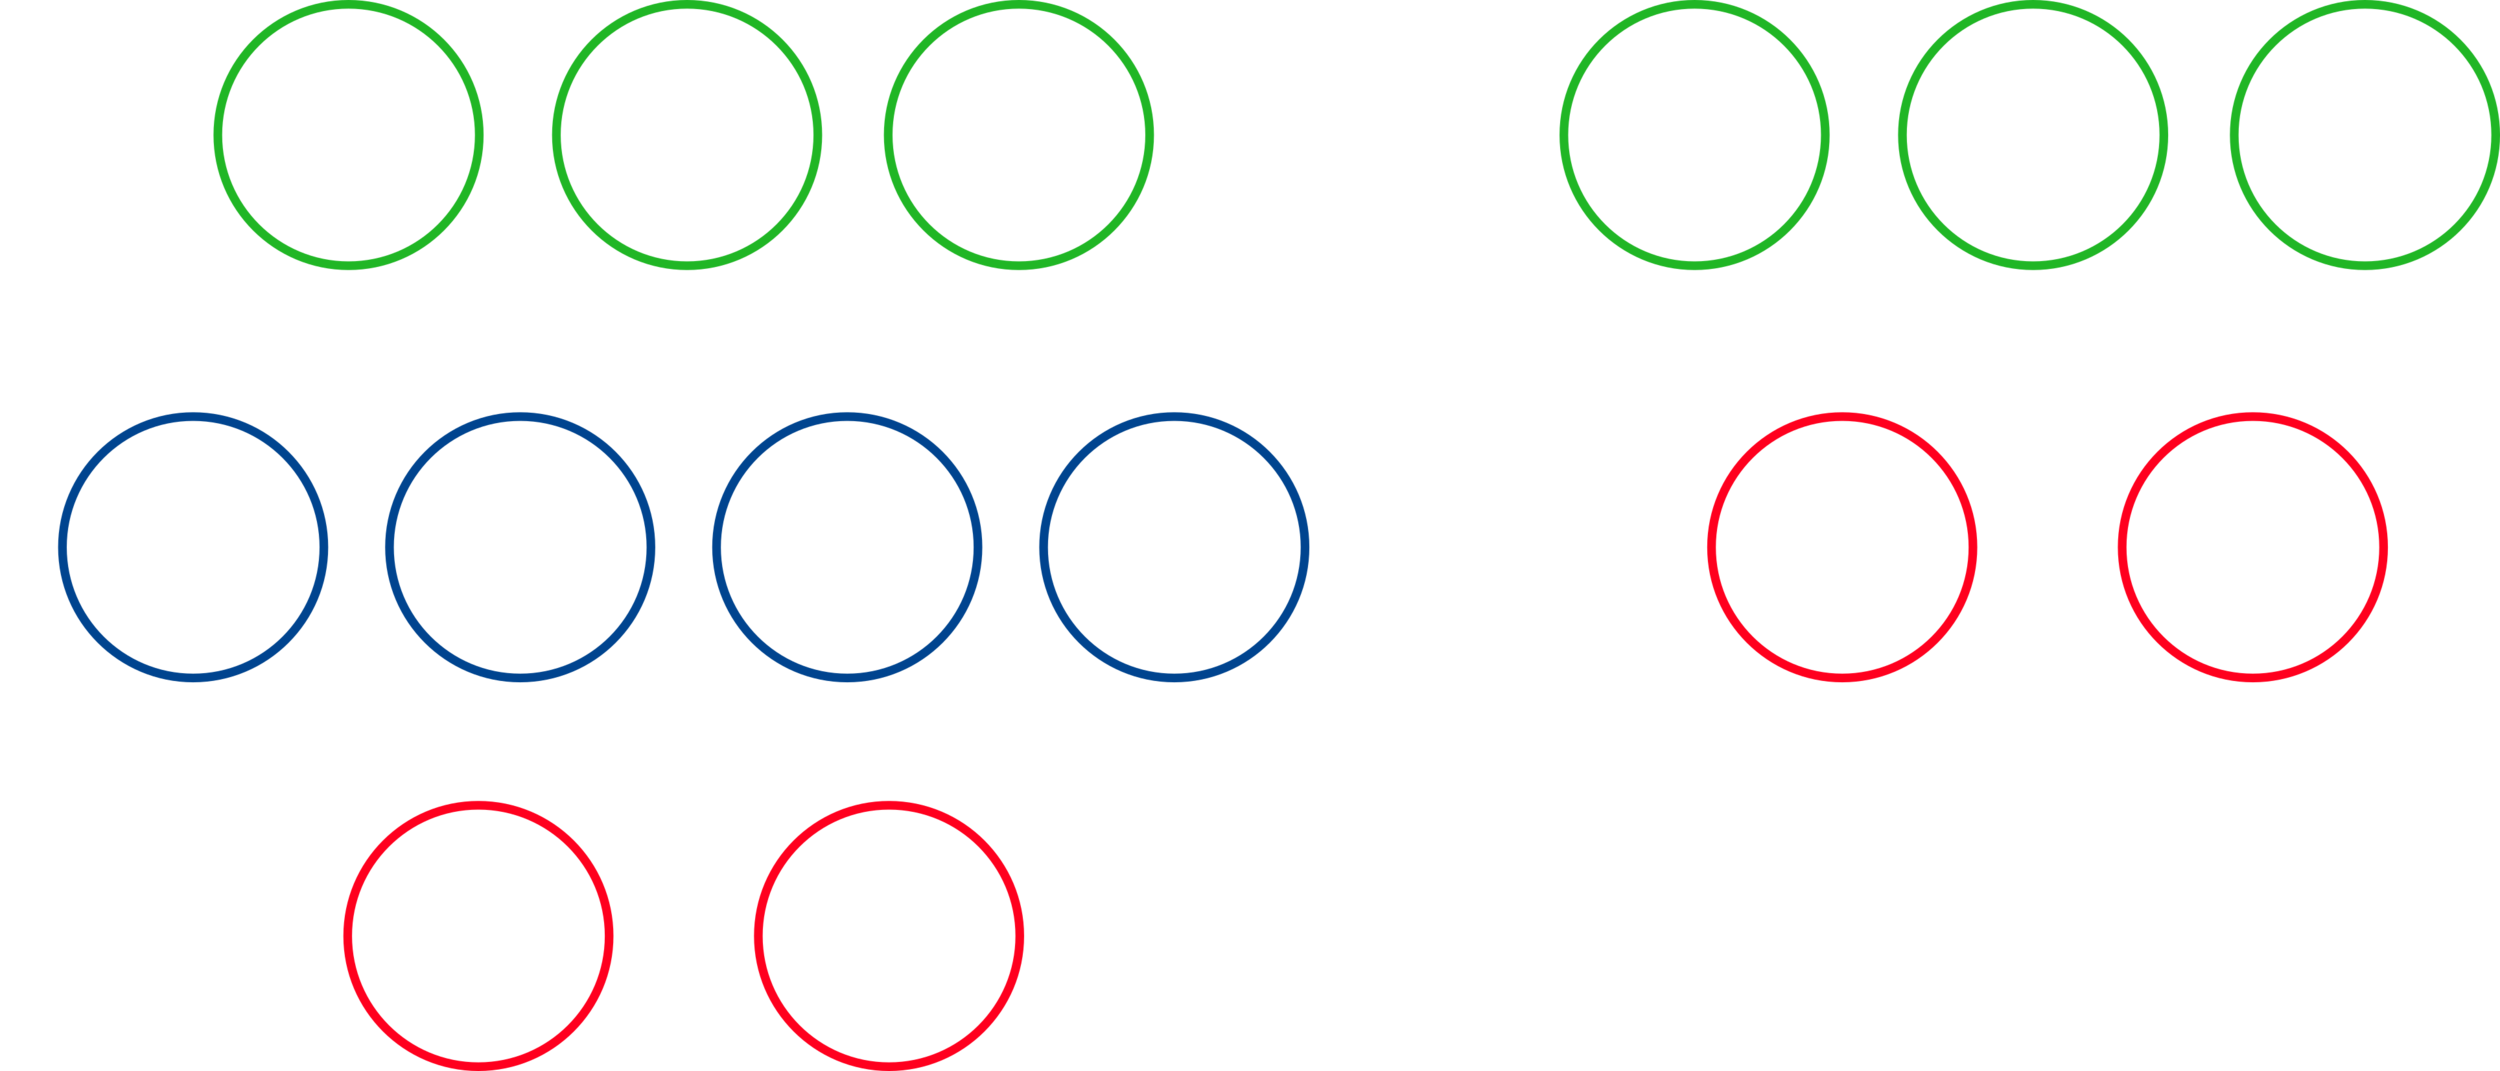 Simplified examples of multi-layer (left) and single-layer (right) neural networks. Real neural networks have many more nodes, and deep neural networks also have many layers of hidden nodes.